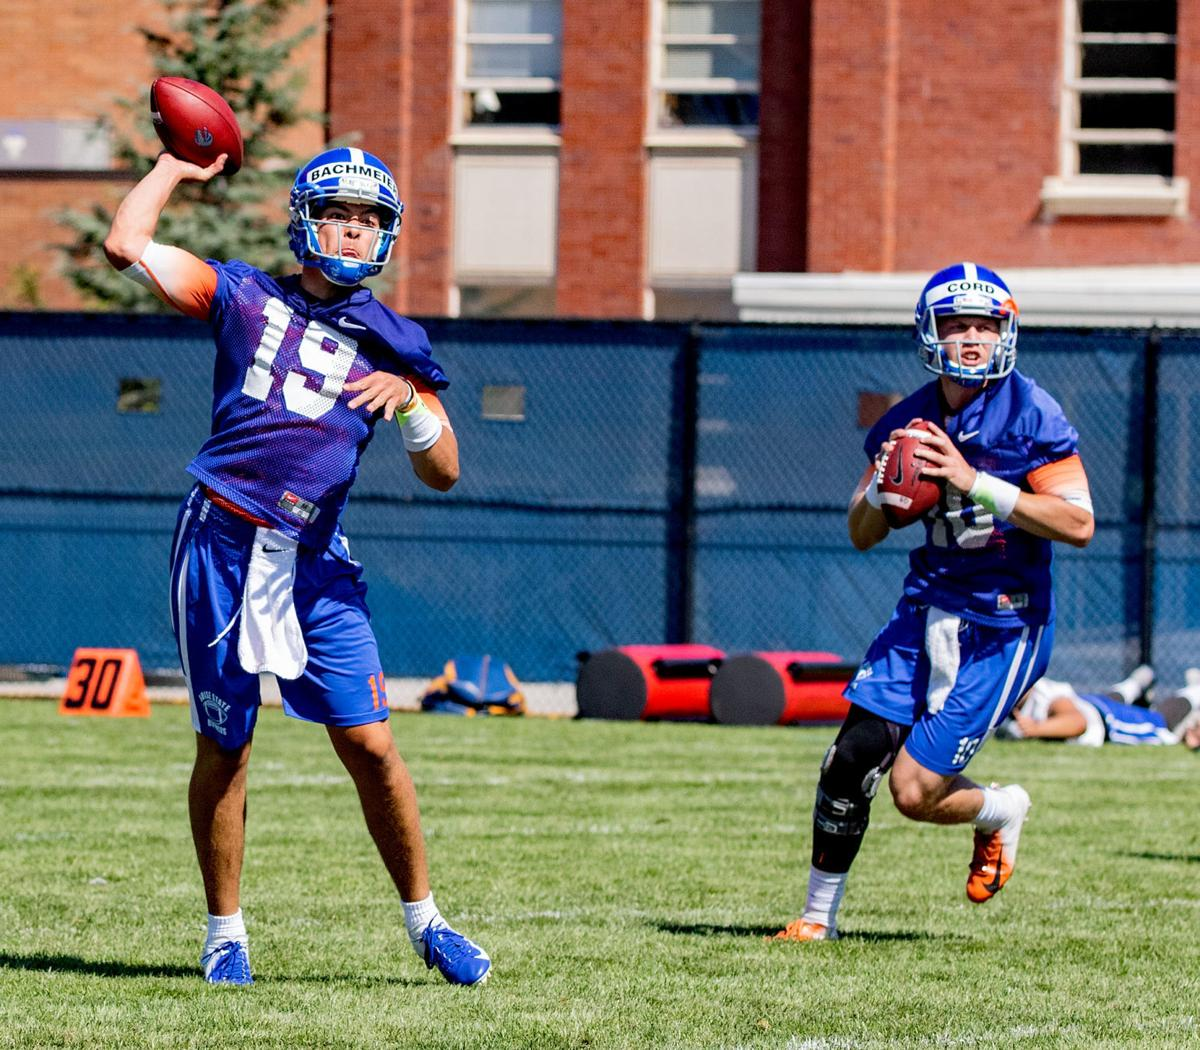 Boise State's QB battle could be nearing conclusion